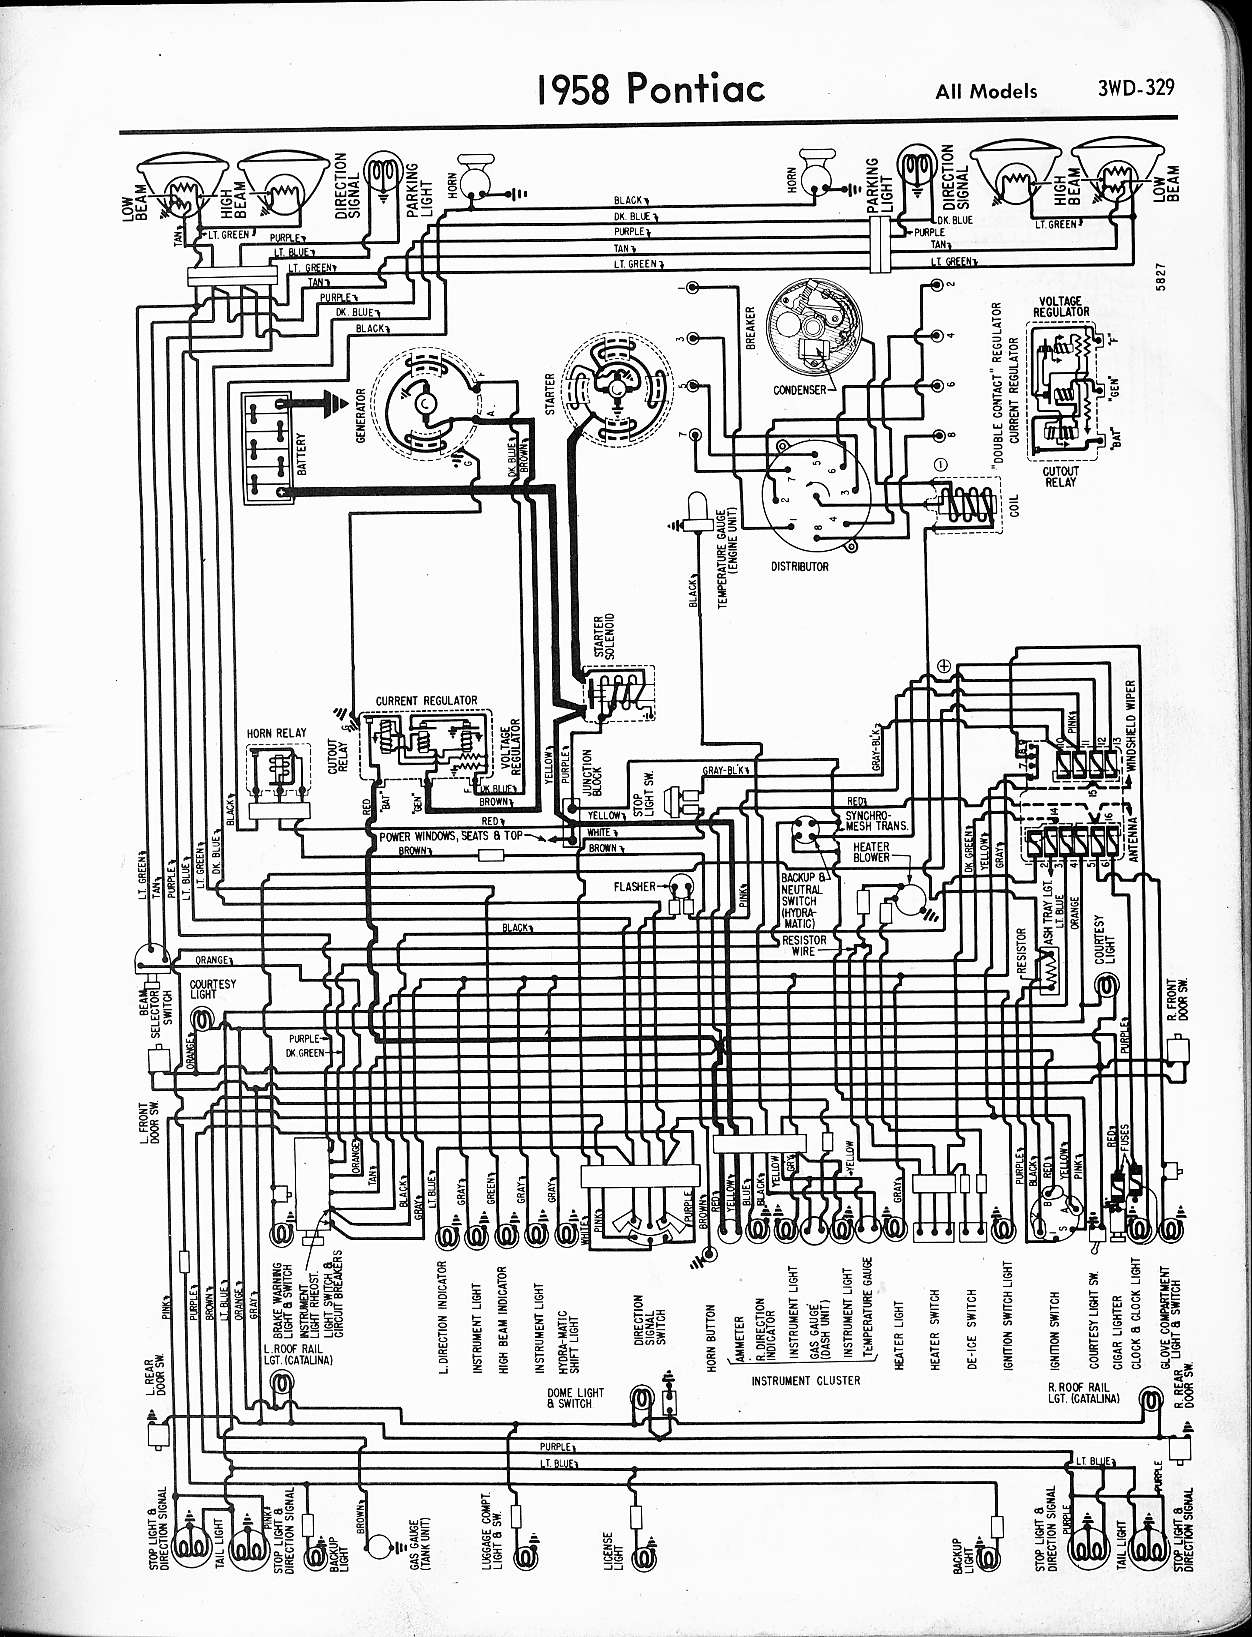 69 Pontiac Firebird Ignition Wiring Diagram Worksheet And 1968 Camaro Rear Harness 1958 Schematics Rh Mychampagnedaze Com 1972 1973 Defroster